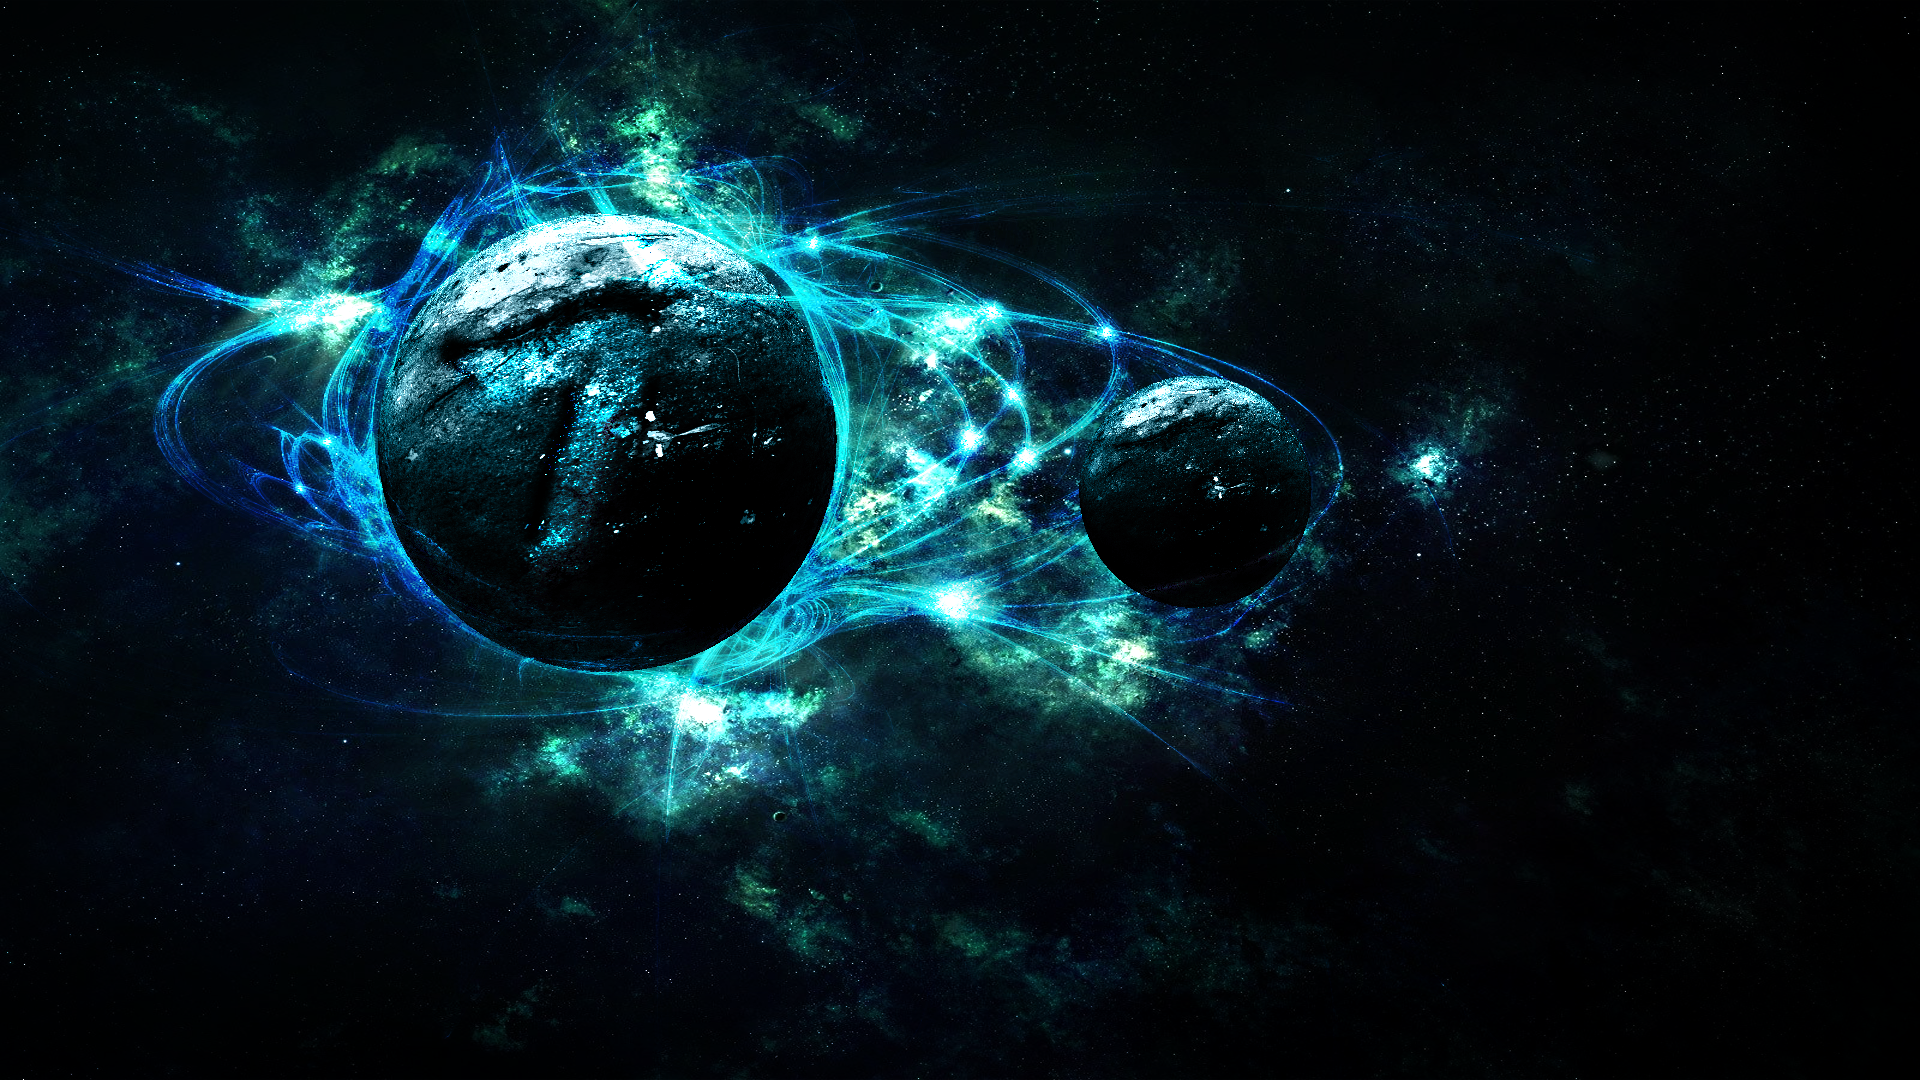 planets 3d windows background - photo #21